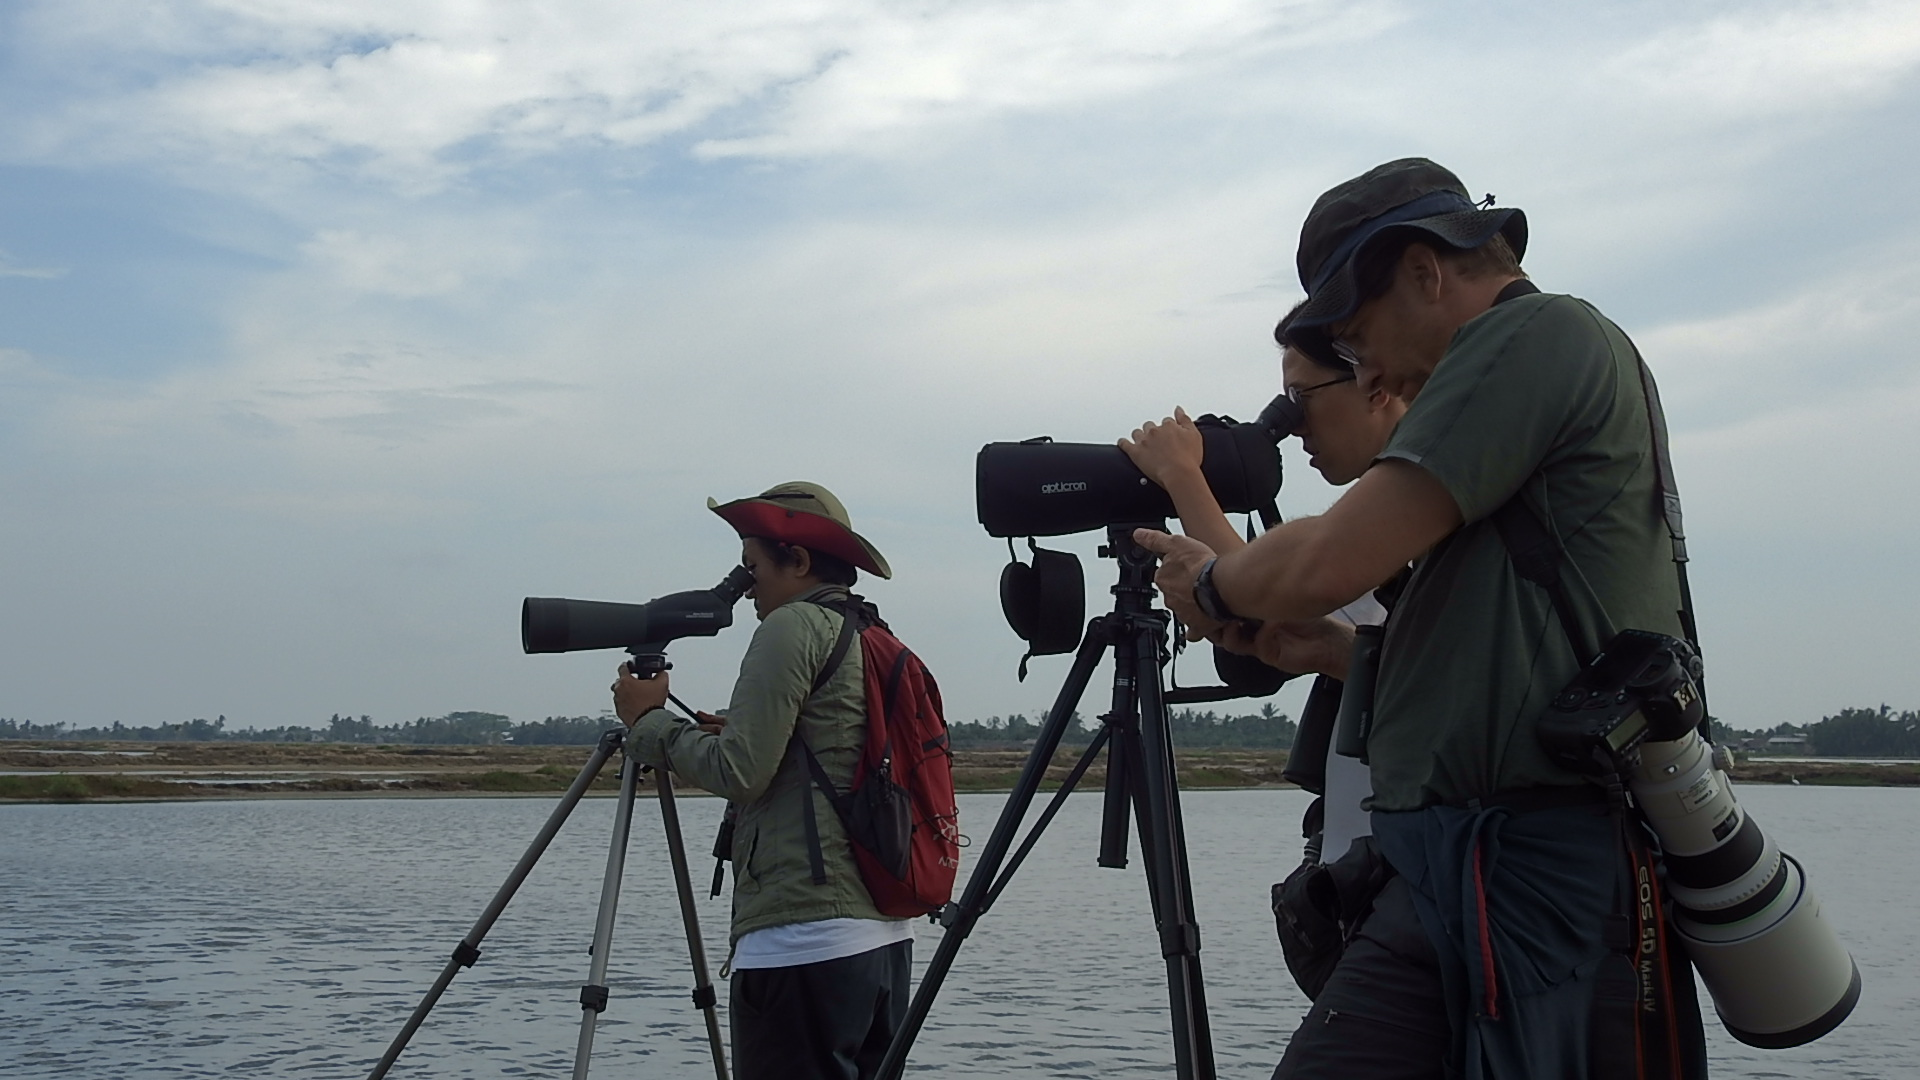 Chairunas Adha Putra and his colleagues monitoring wildlife.